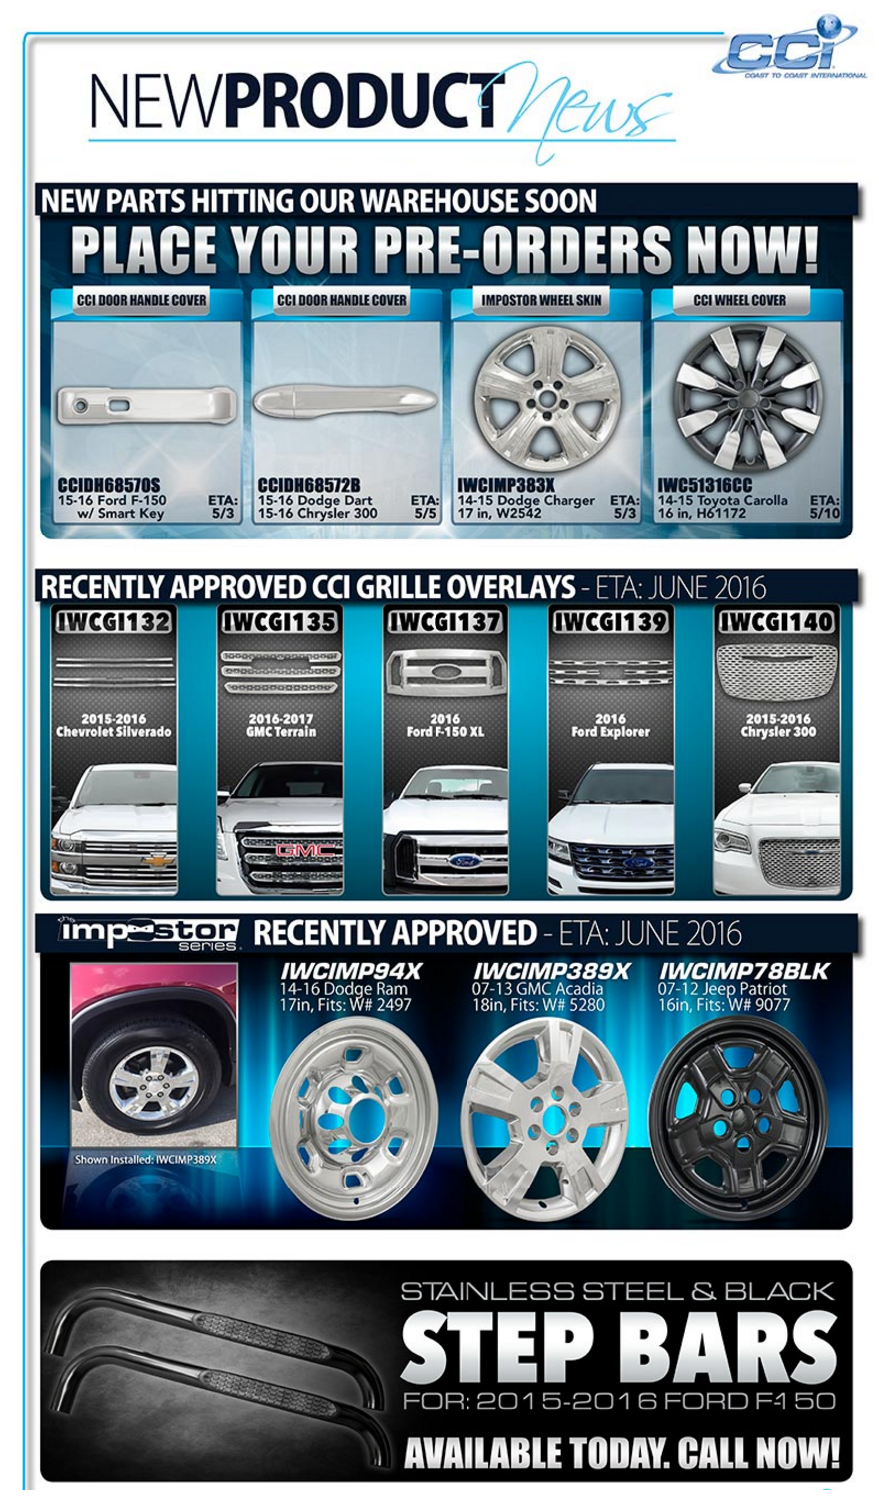 New parts hitting our warehouse soon! Place your Pre-orders now!